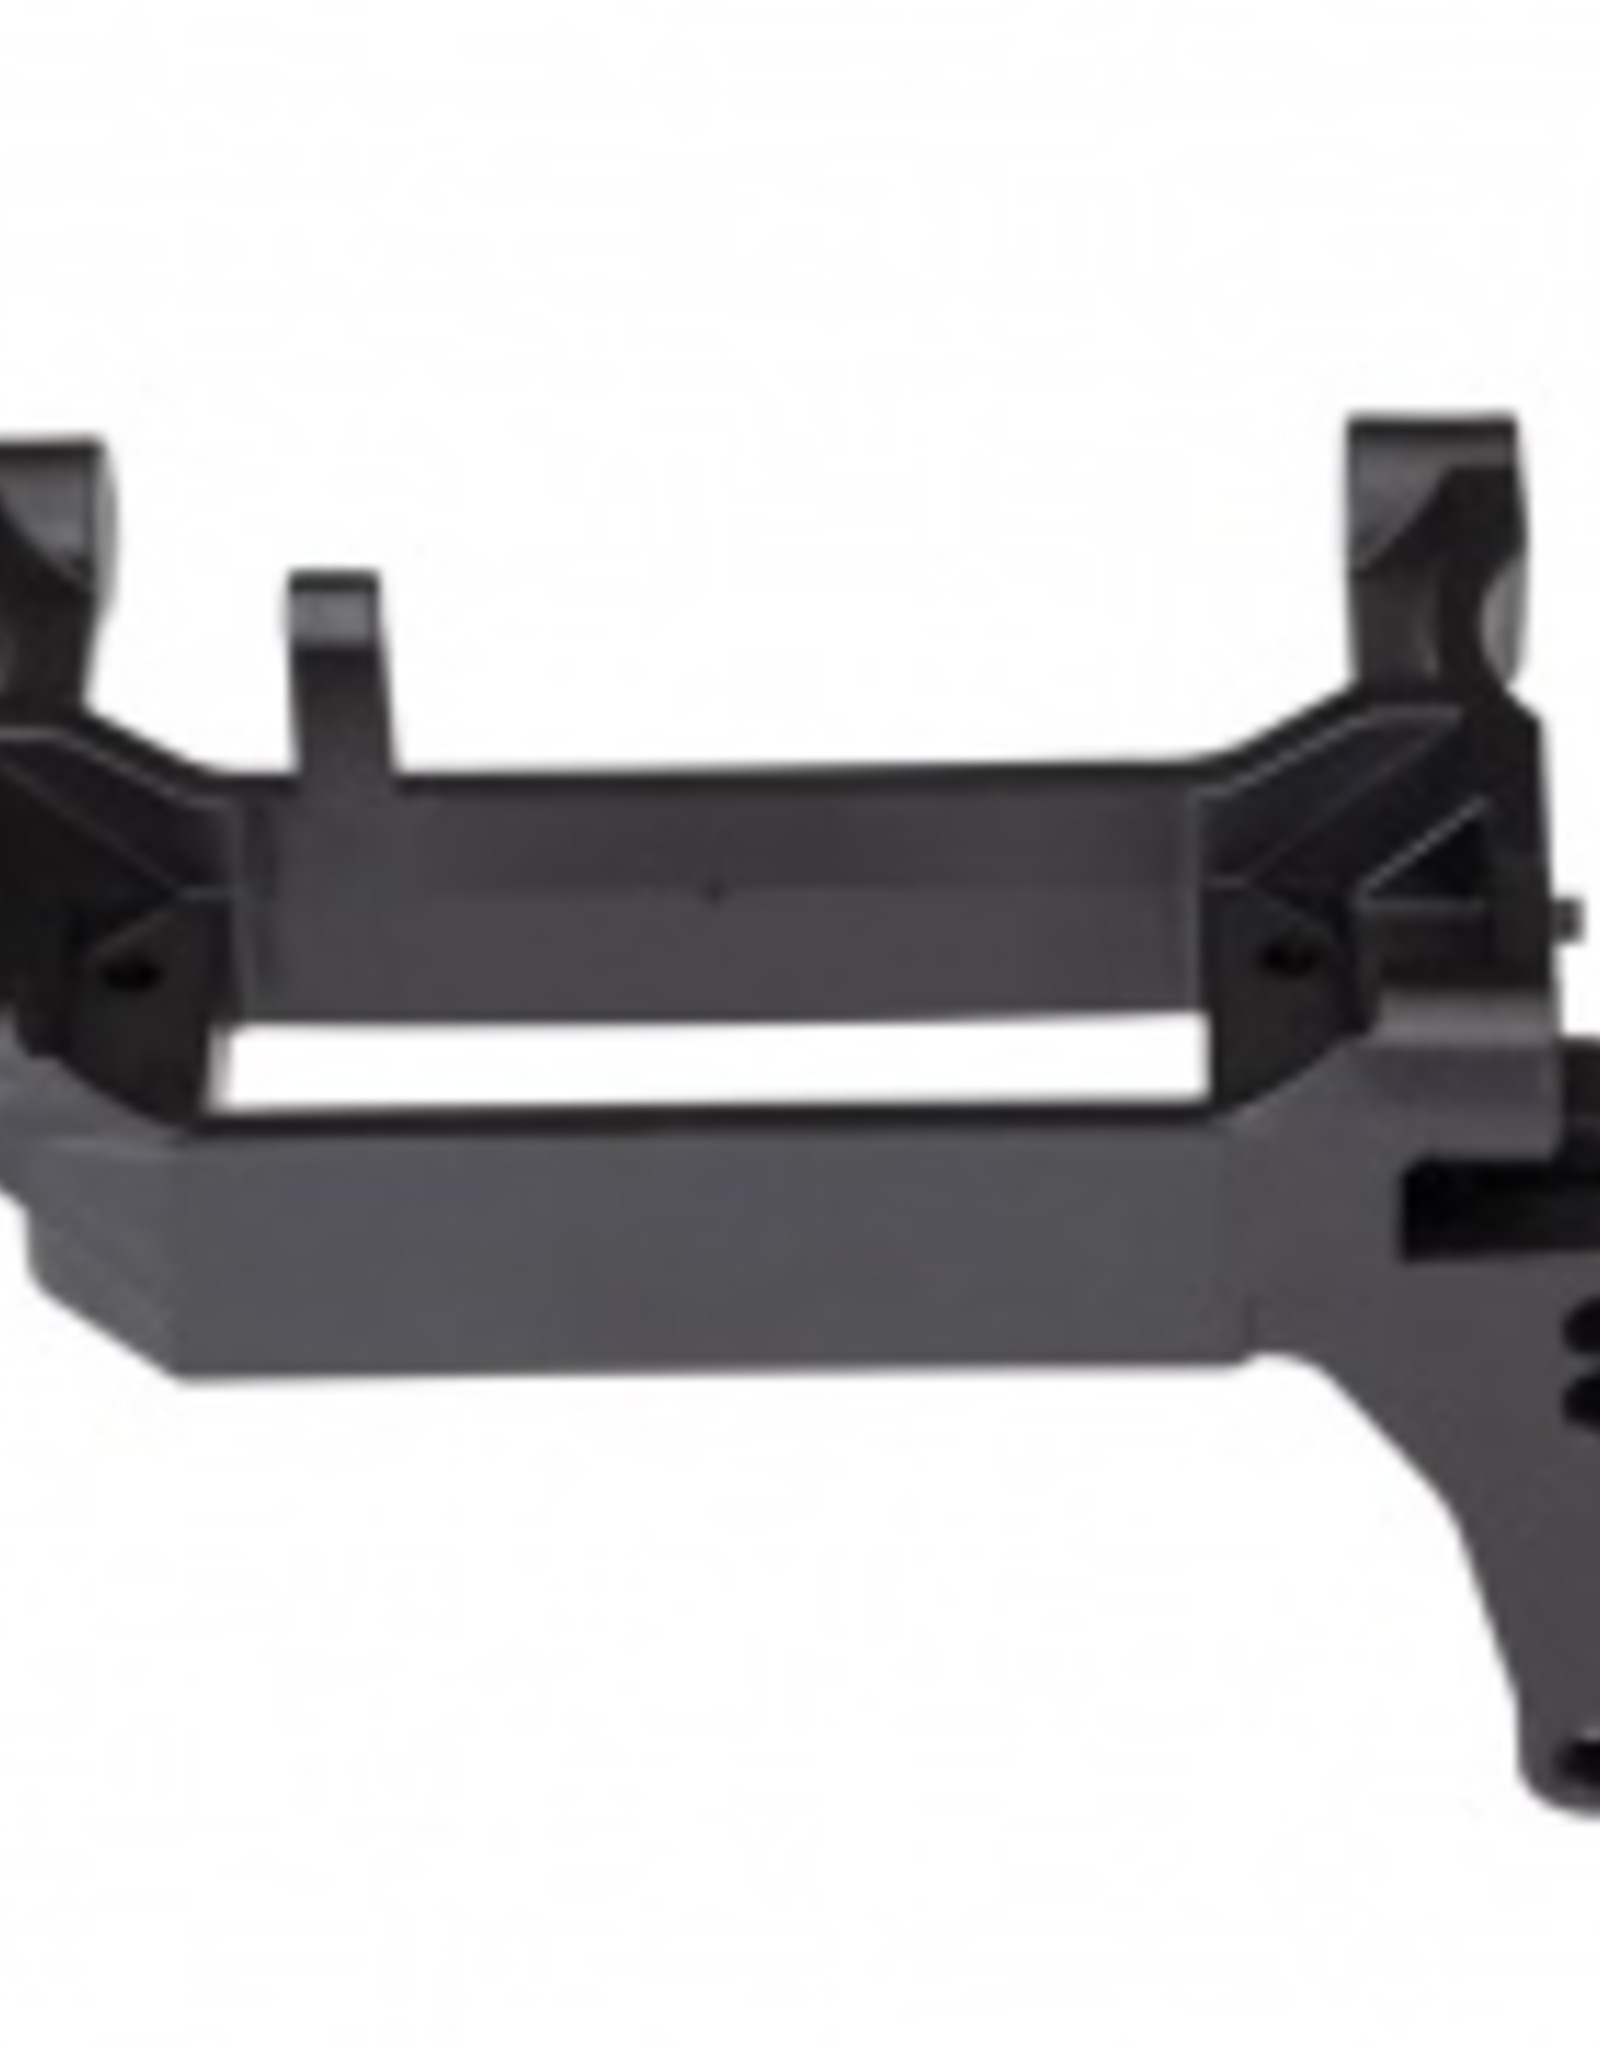 Traxxas Traxxas TRX Servo mount, steering (for use with TRX-4® Long Arm Lift Kit)